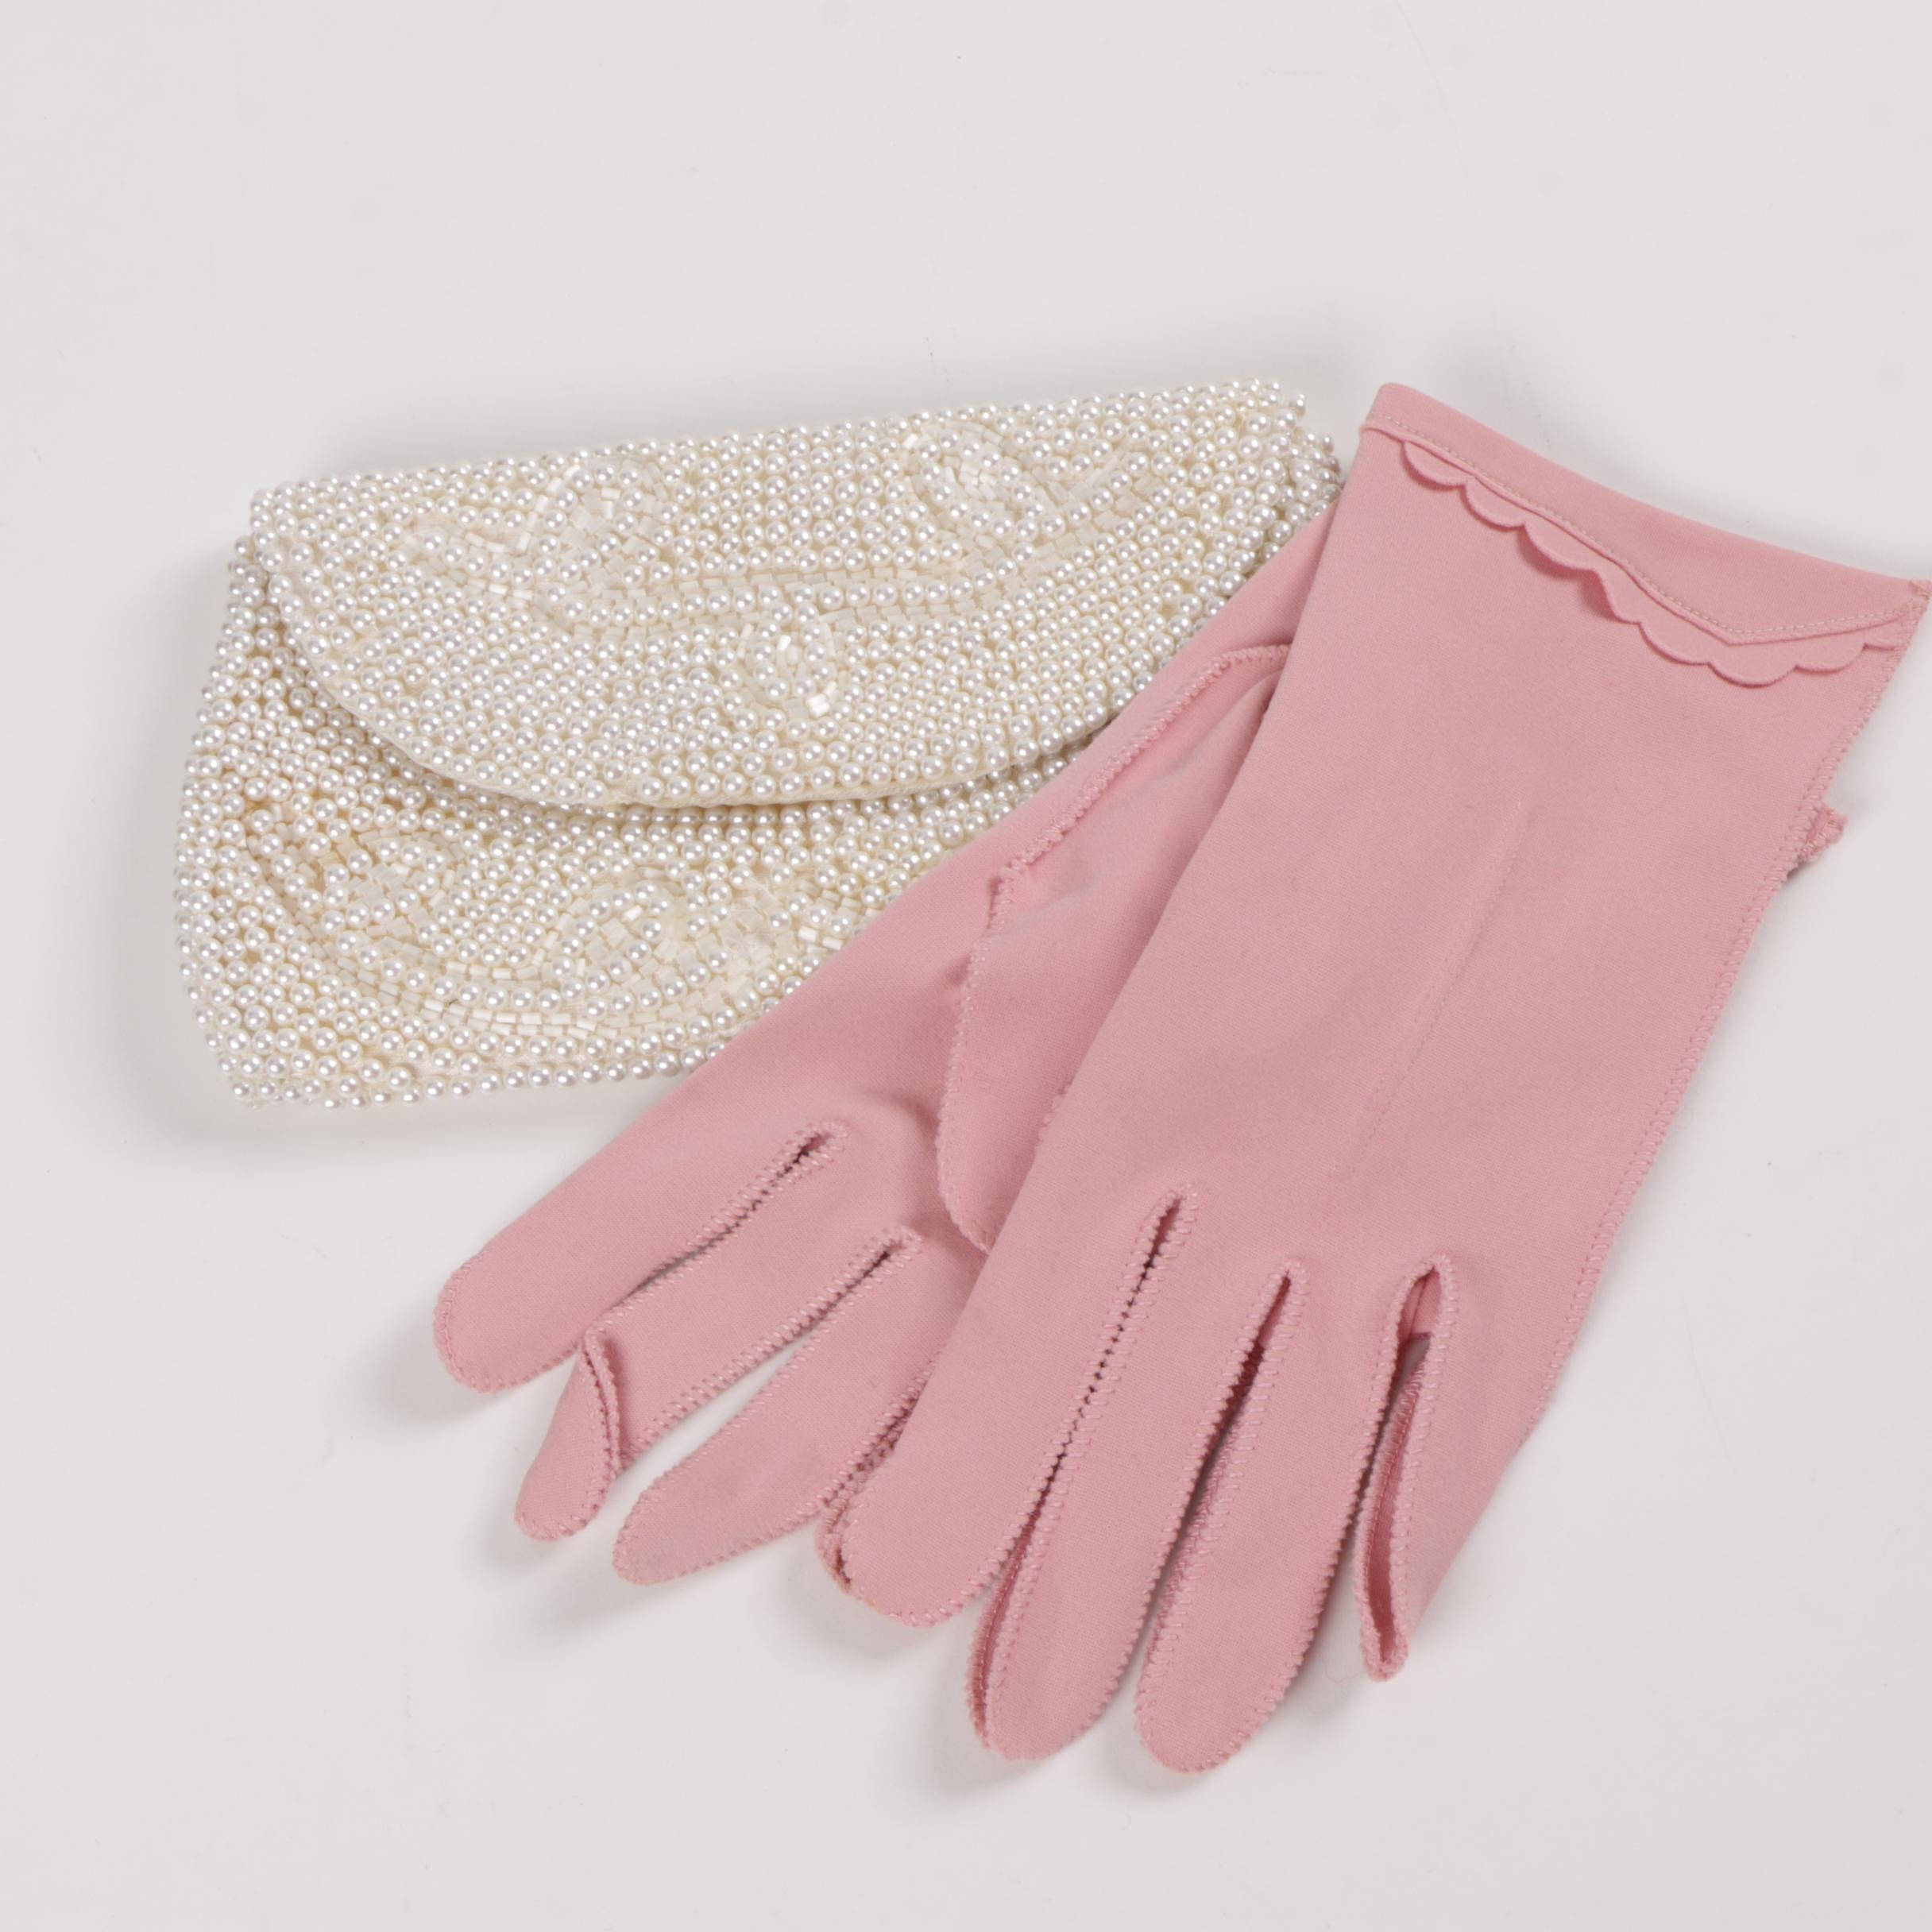 Vintage Pairing of Gloves and Clutch